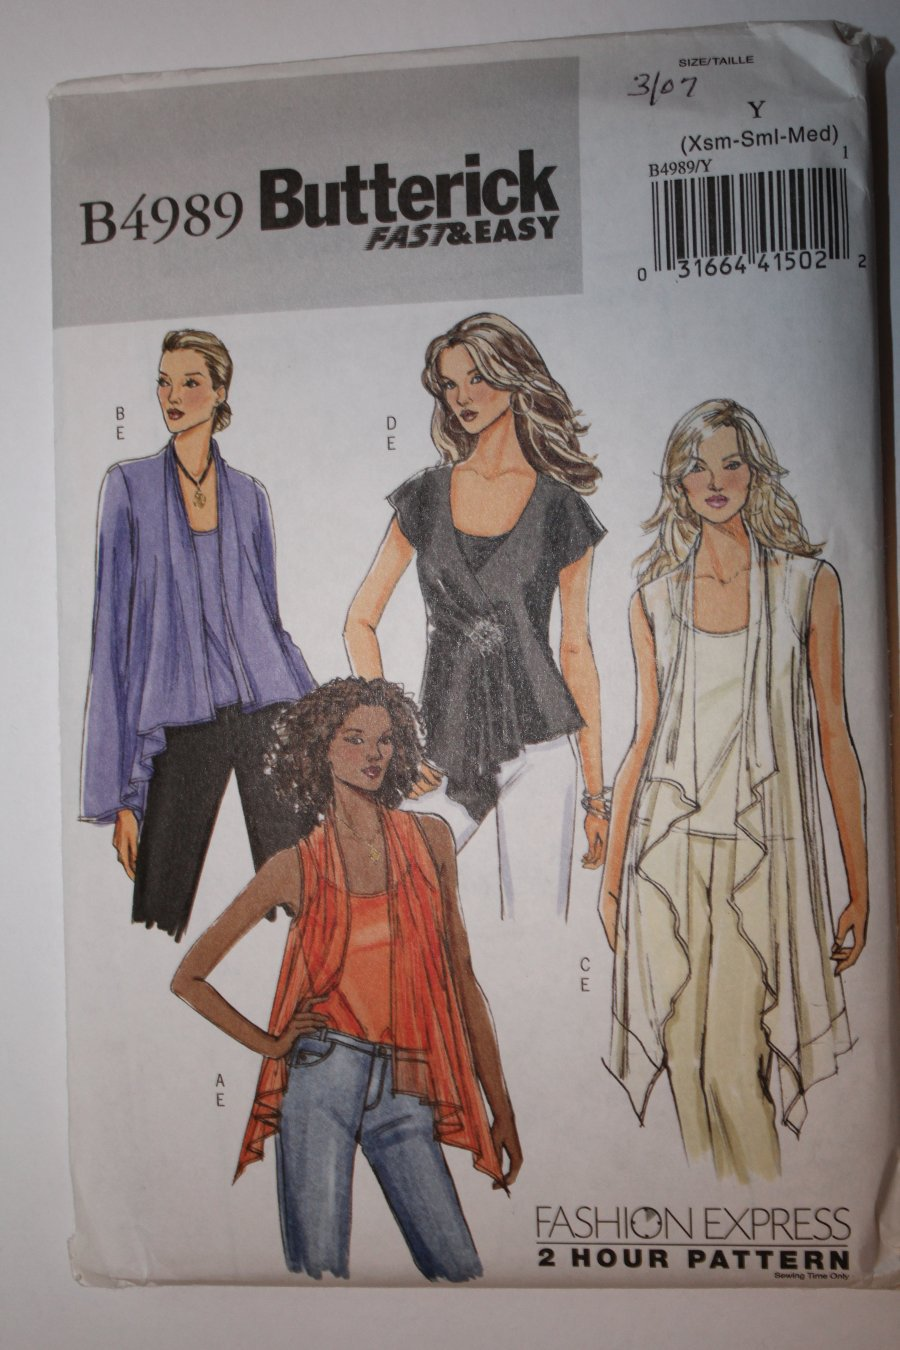 Butterick B4989 Sewing pattern Fast & Easy 2 Hour Tops and Camisole Xsm-Sml-Medium